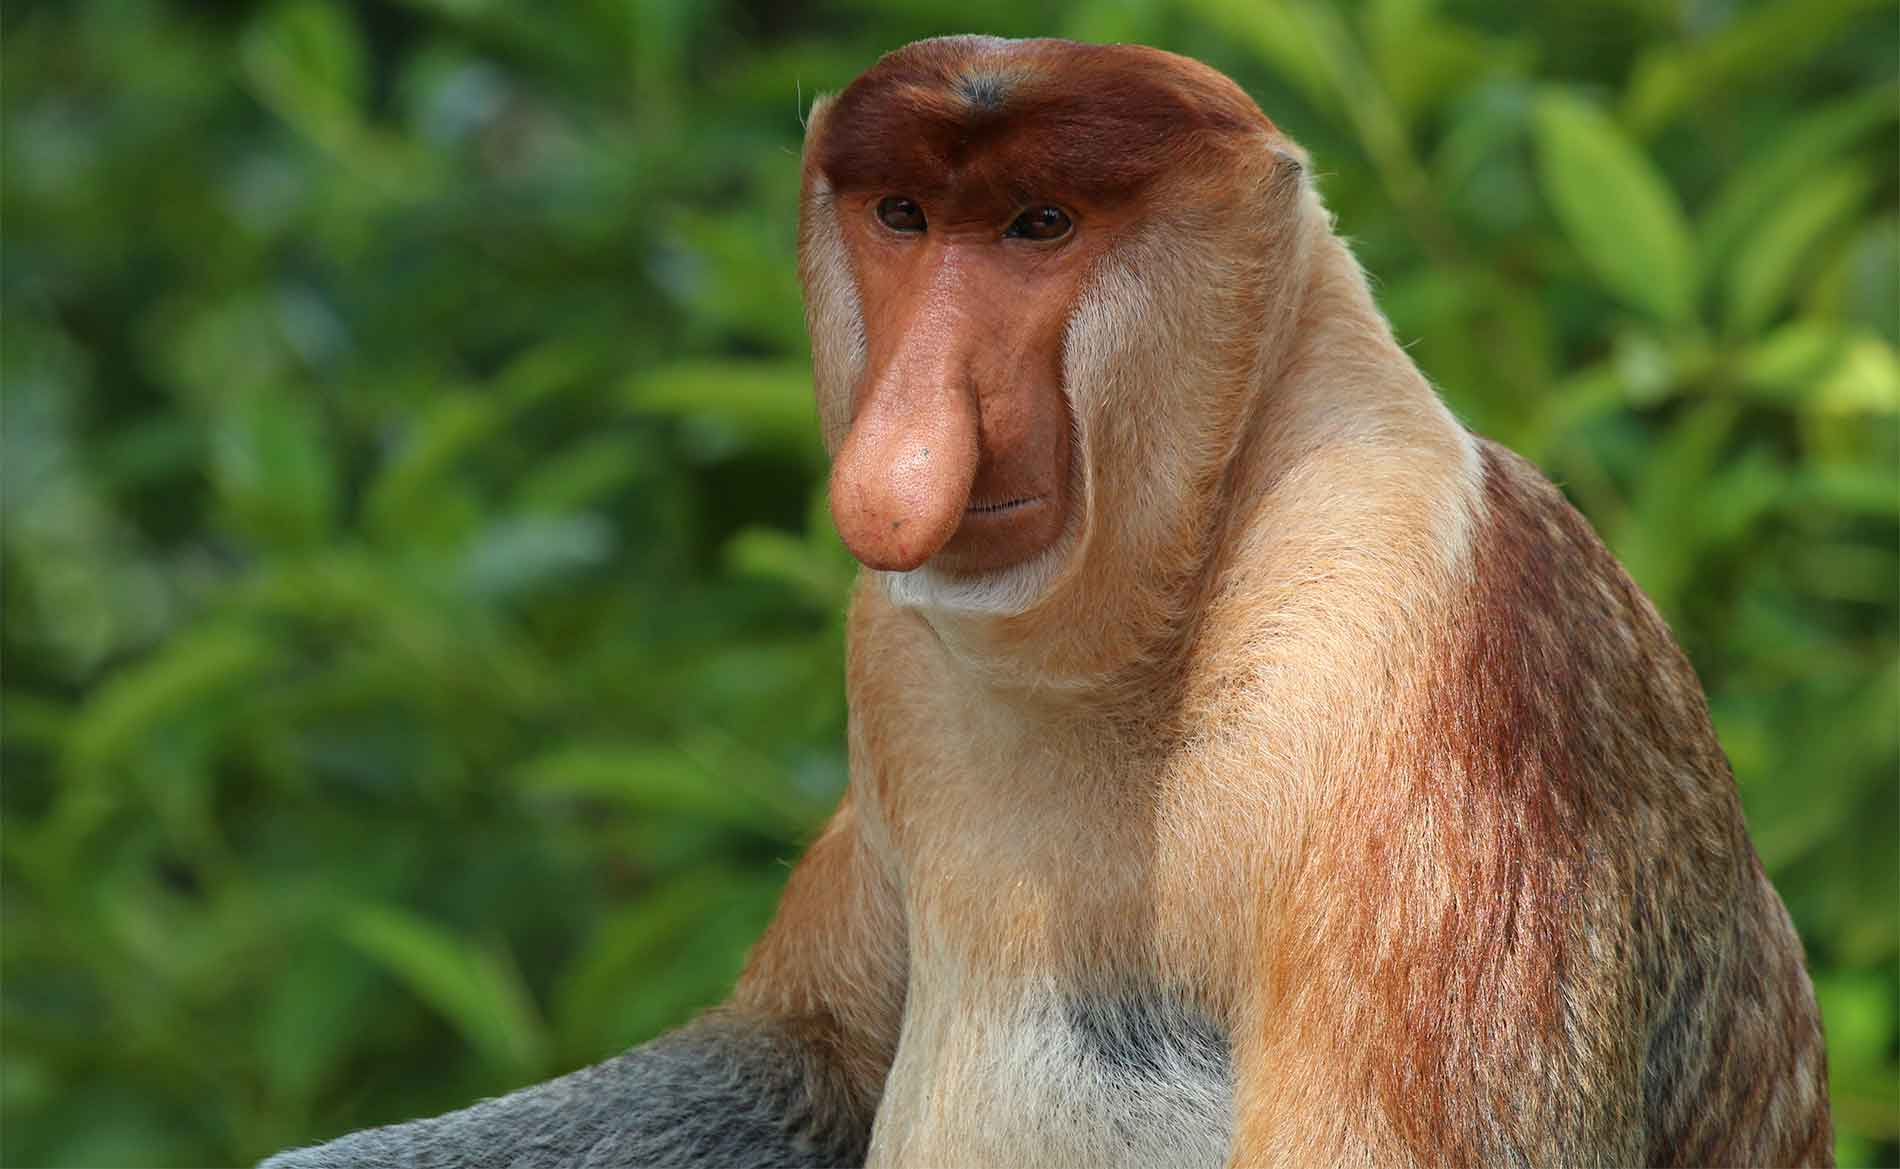 Rimba Raya | Initiatives | Protecting Biodiversity | The Proboscis Monkey Photo By Charles J Harp-CC-BY-SA-40